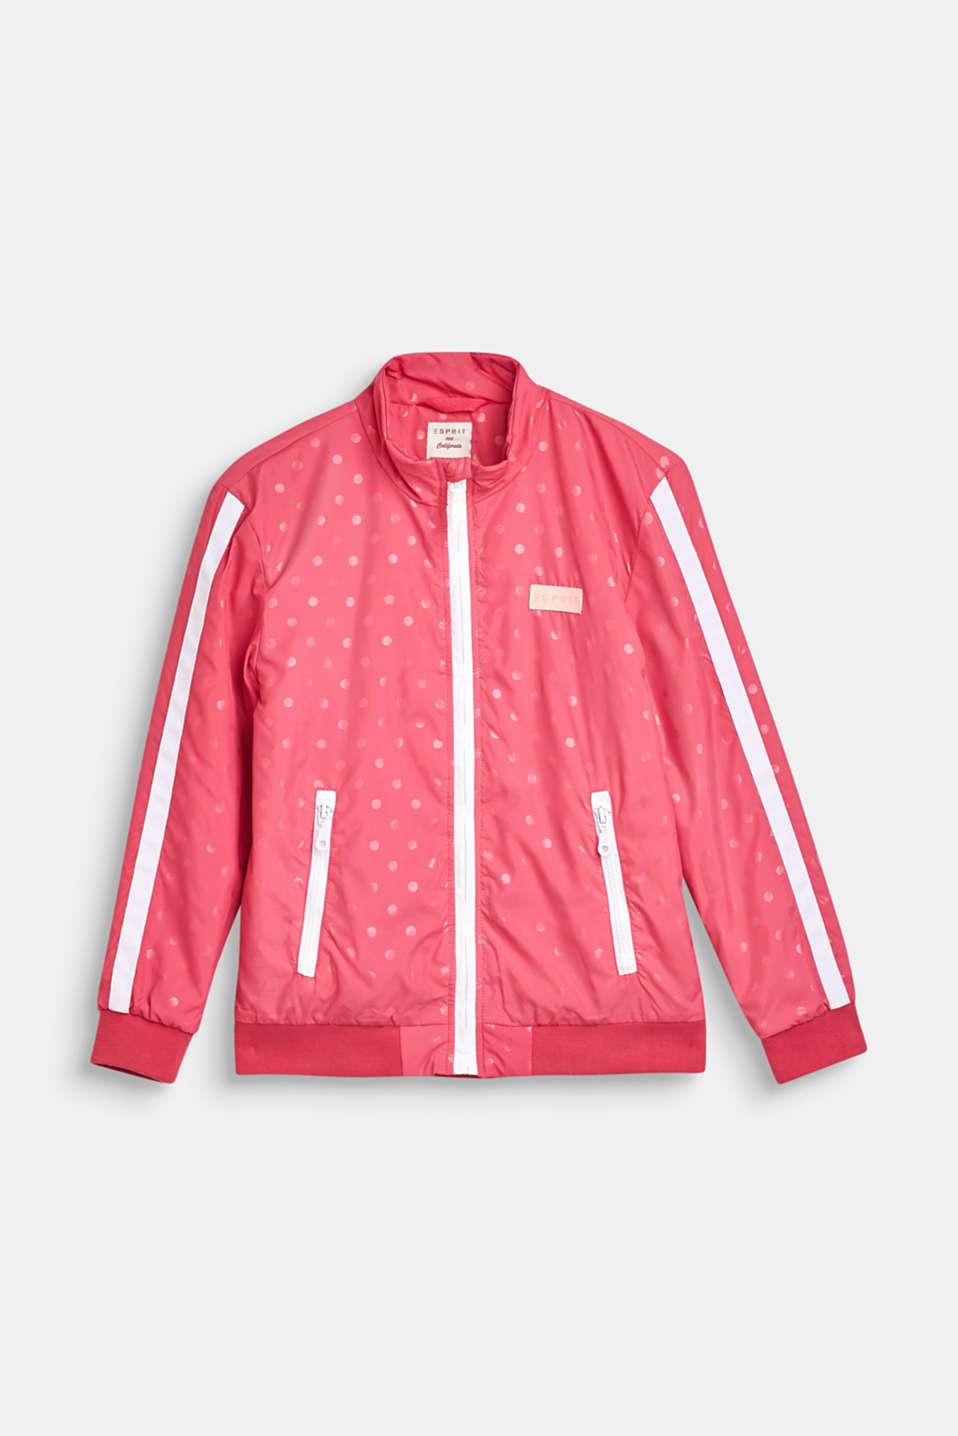 Esprit - Lightly padded nylon jacket with a polka dot print